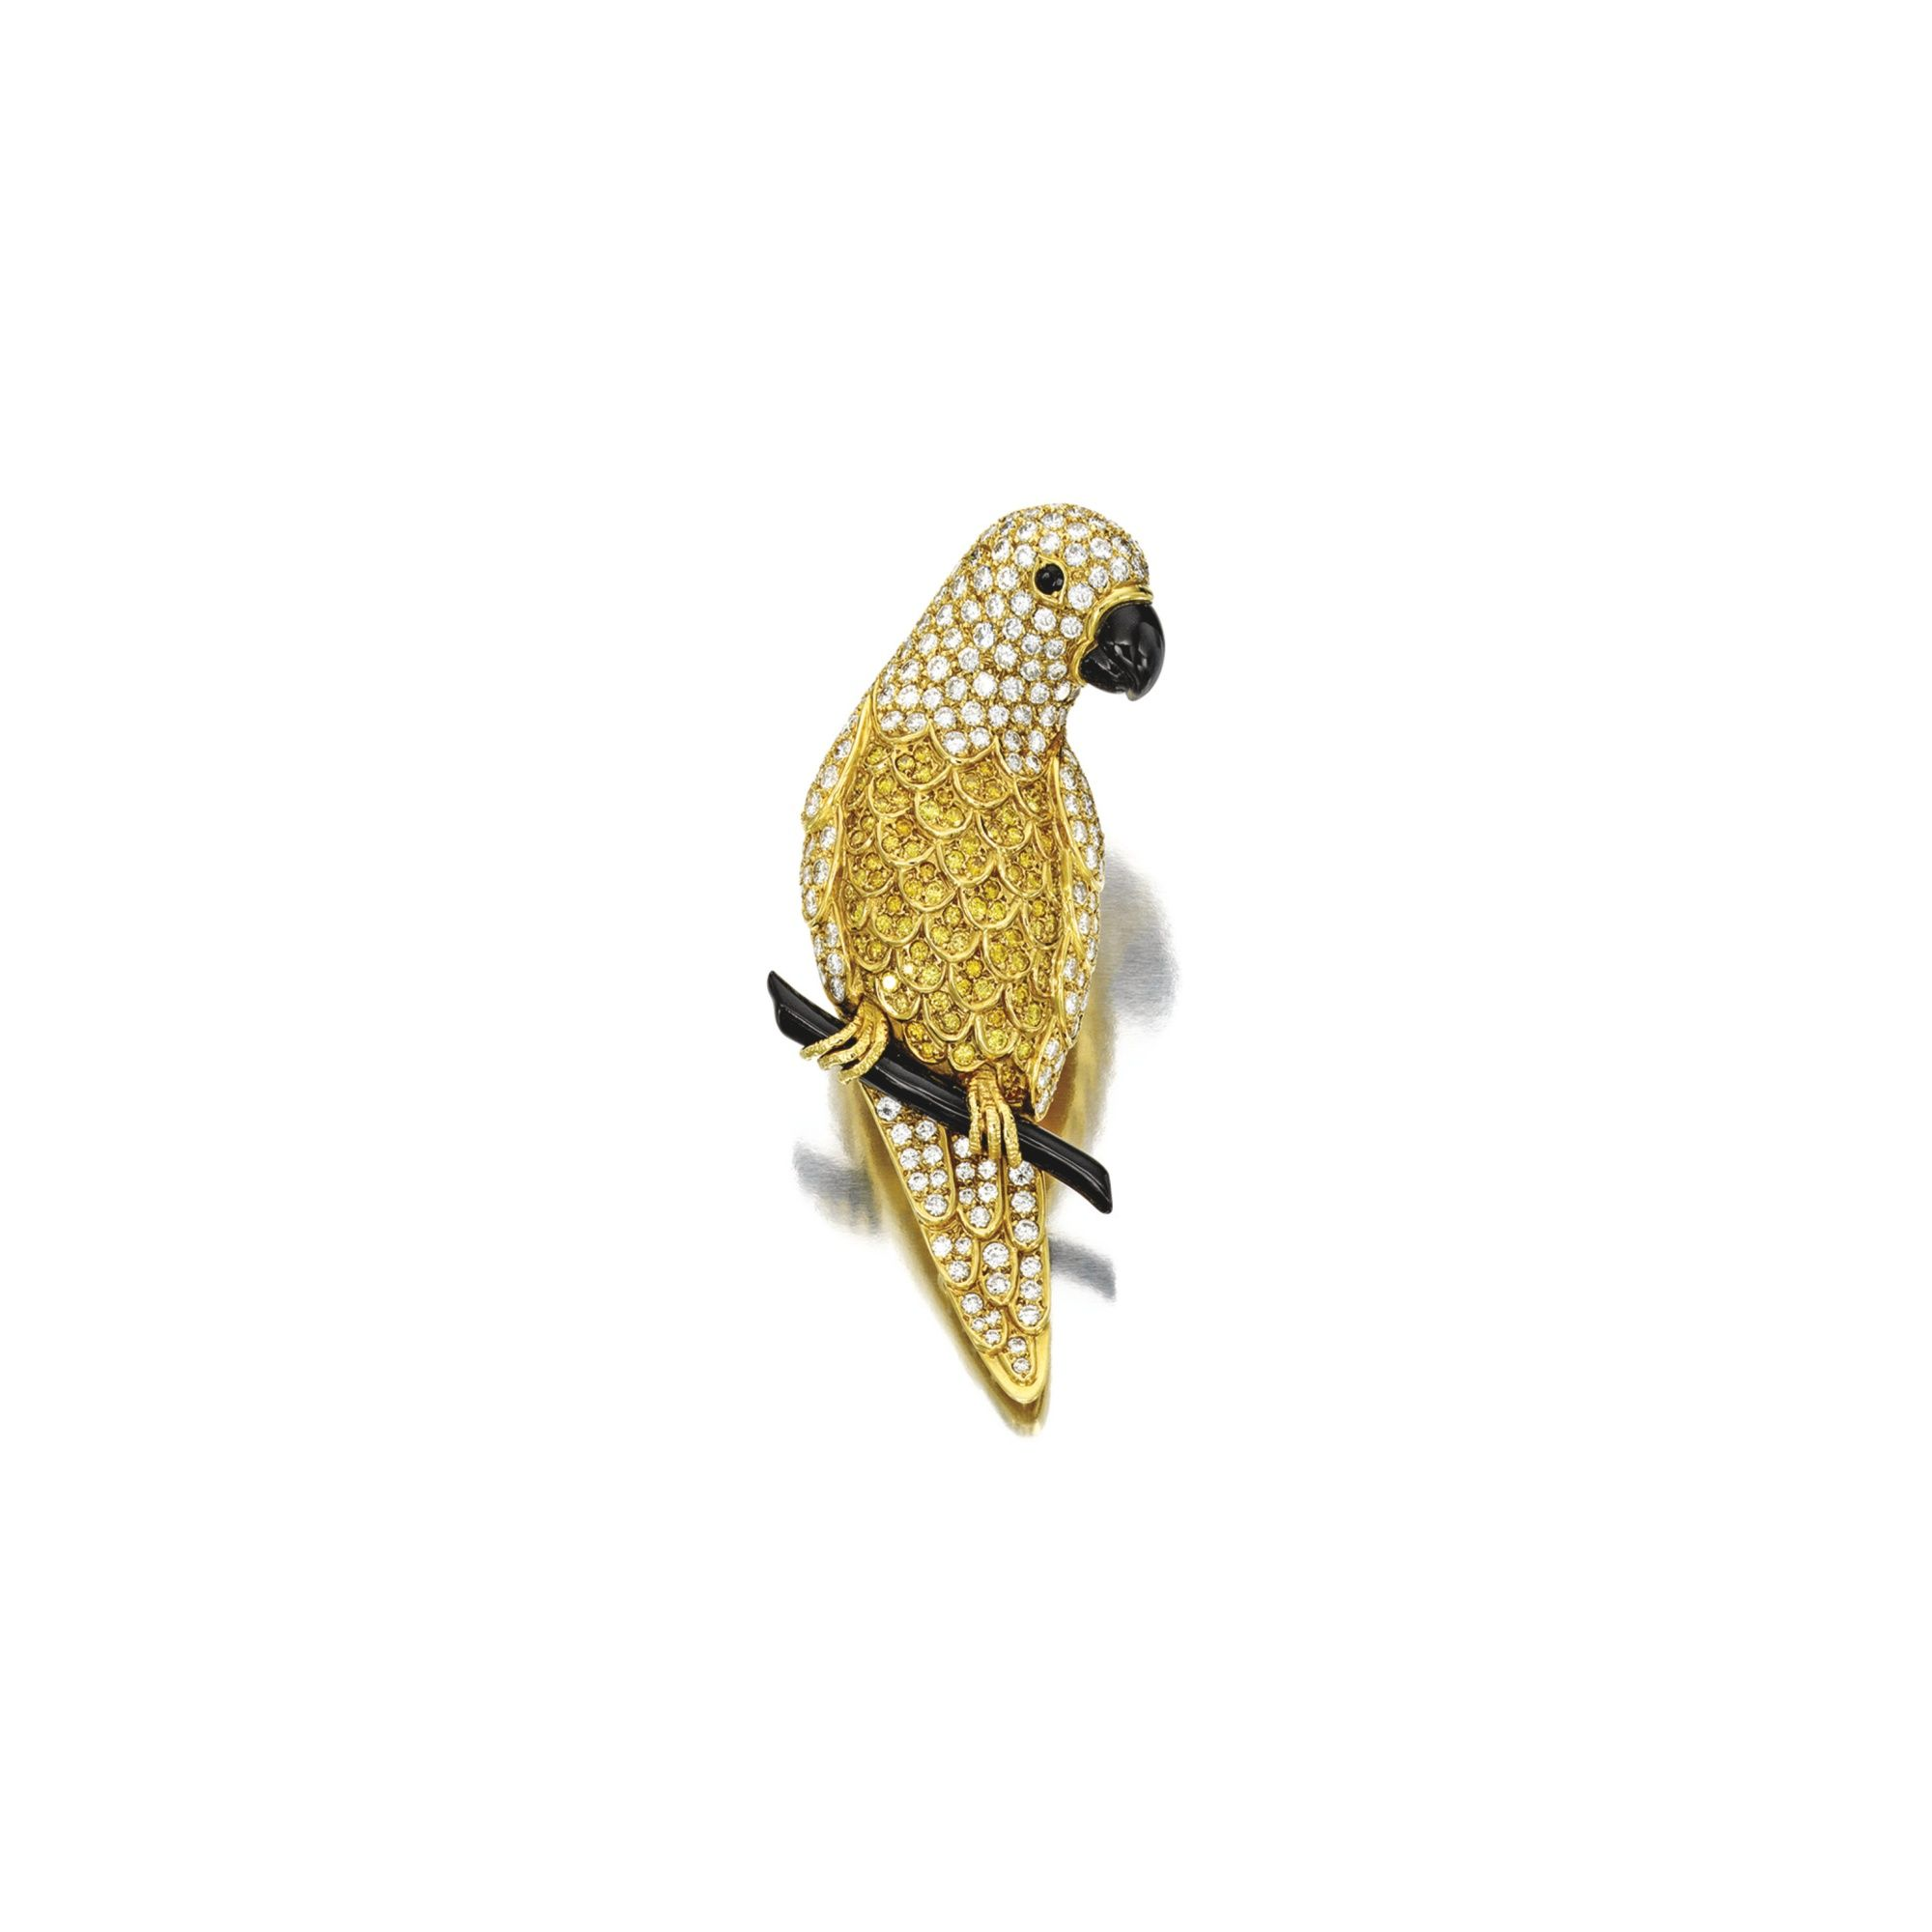 Van cleef amp arpels vca 18k yellow gold ruby cabochon amp diamond - Diamond And Onyx Clip Brooch Van Cleef Arpels Designed As A Parrot Resting On